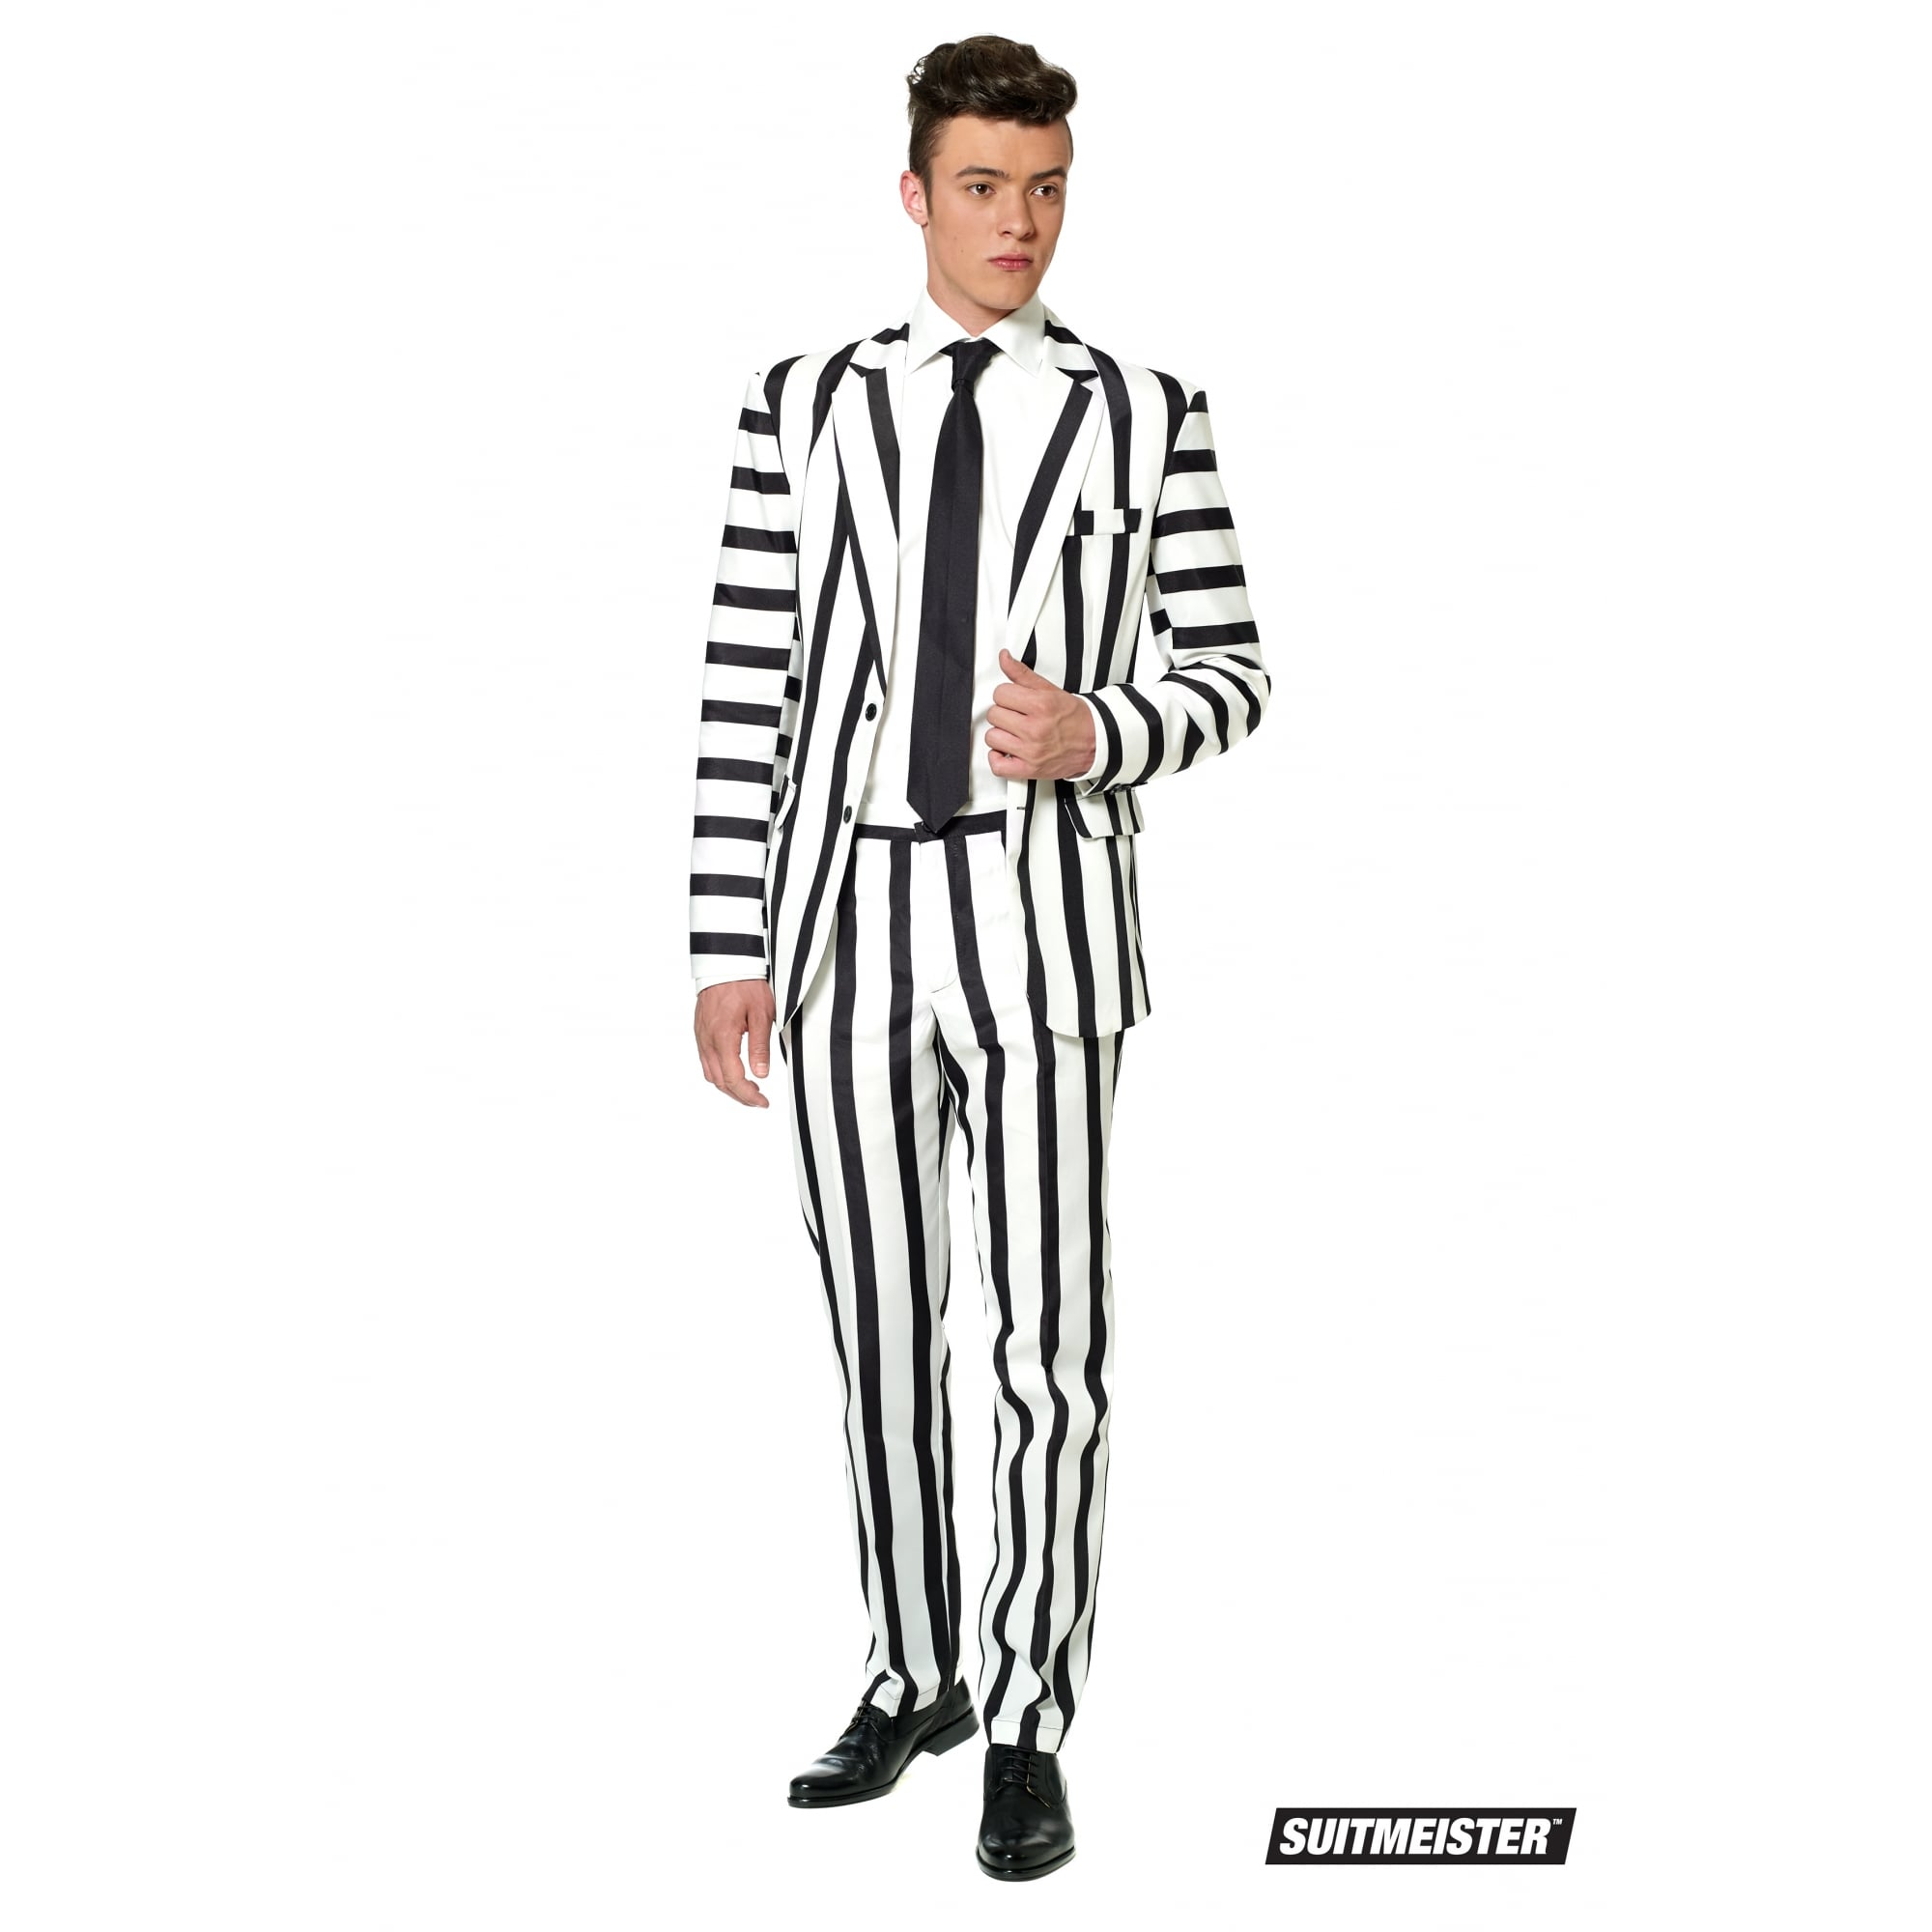 ADULT-MENS-HALLOWEEN-SUIT-SUITMEISTER-PARTY-STAG-NOVELTY-SUIT